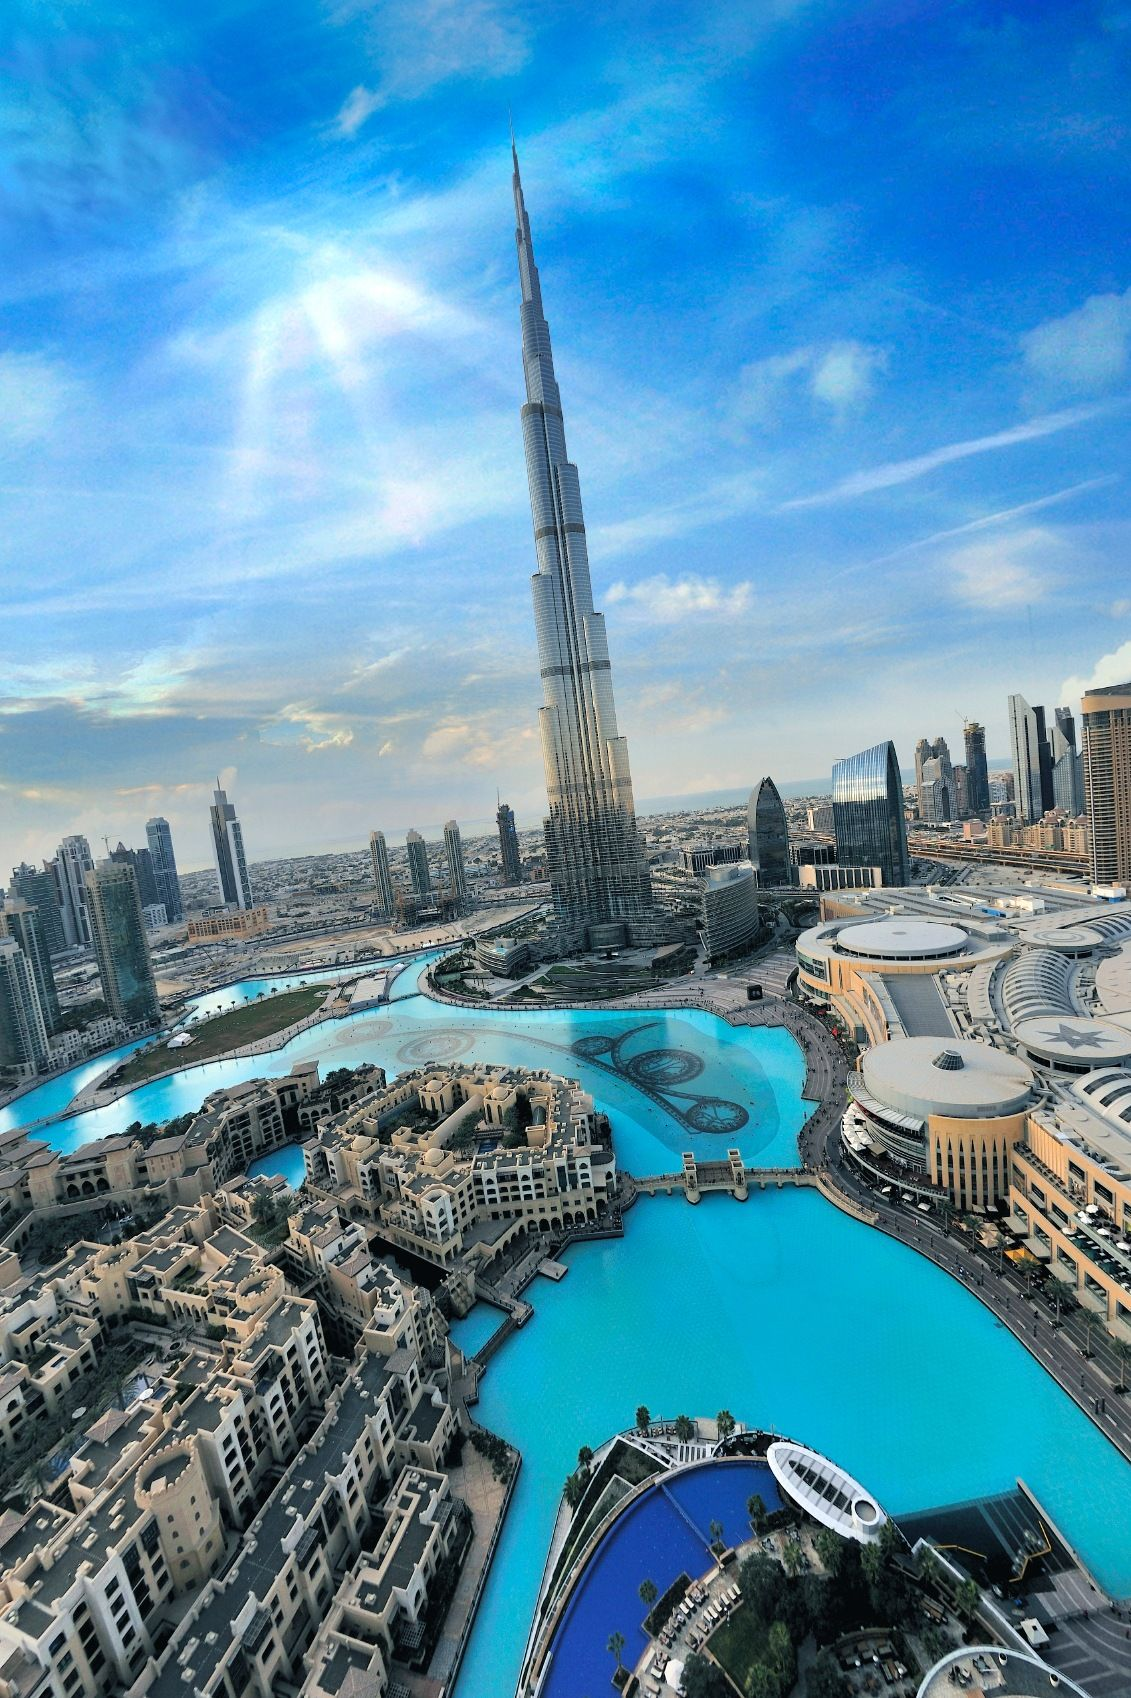 this is the tallest building in the world the Burj Khalifa